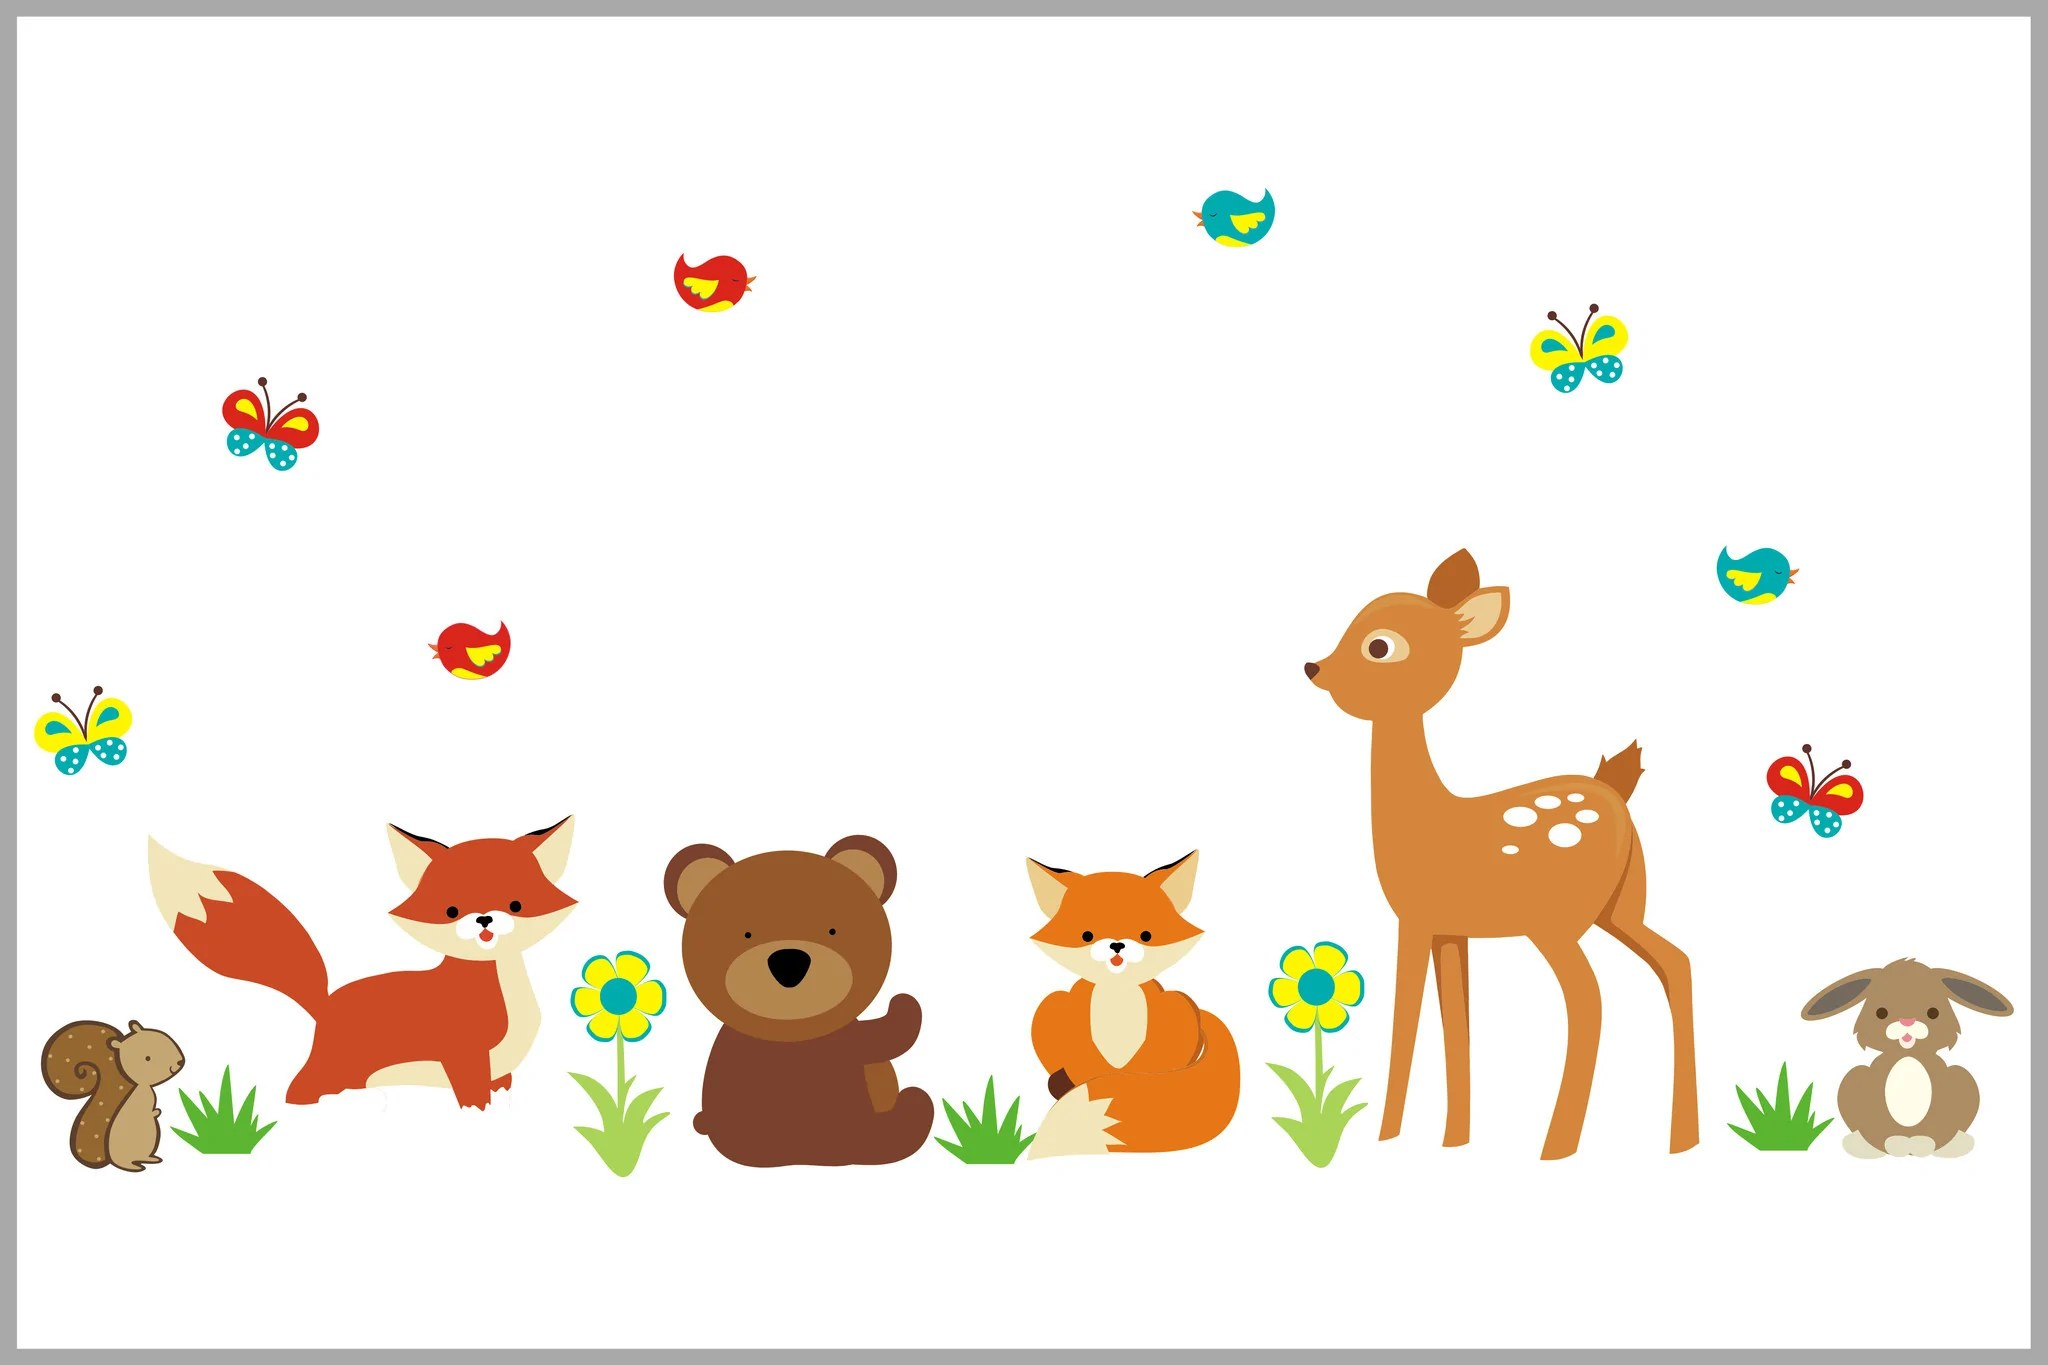 Is acquired by instaragf asset management inc. Forest Wall Stickers Deer Rabbit Fox Squirrel Birds Nurserydecals4you